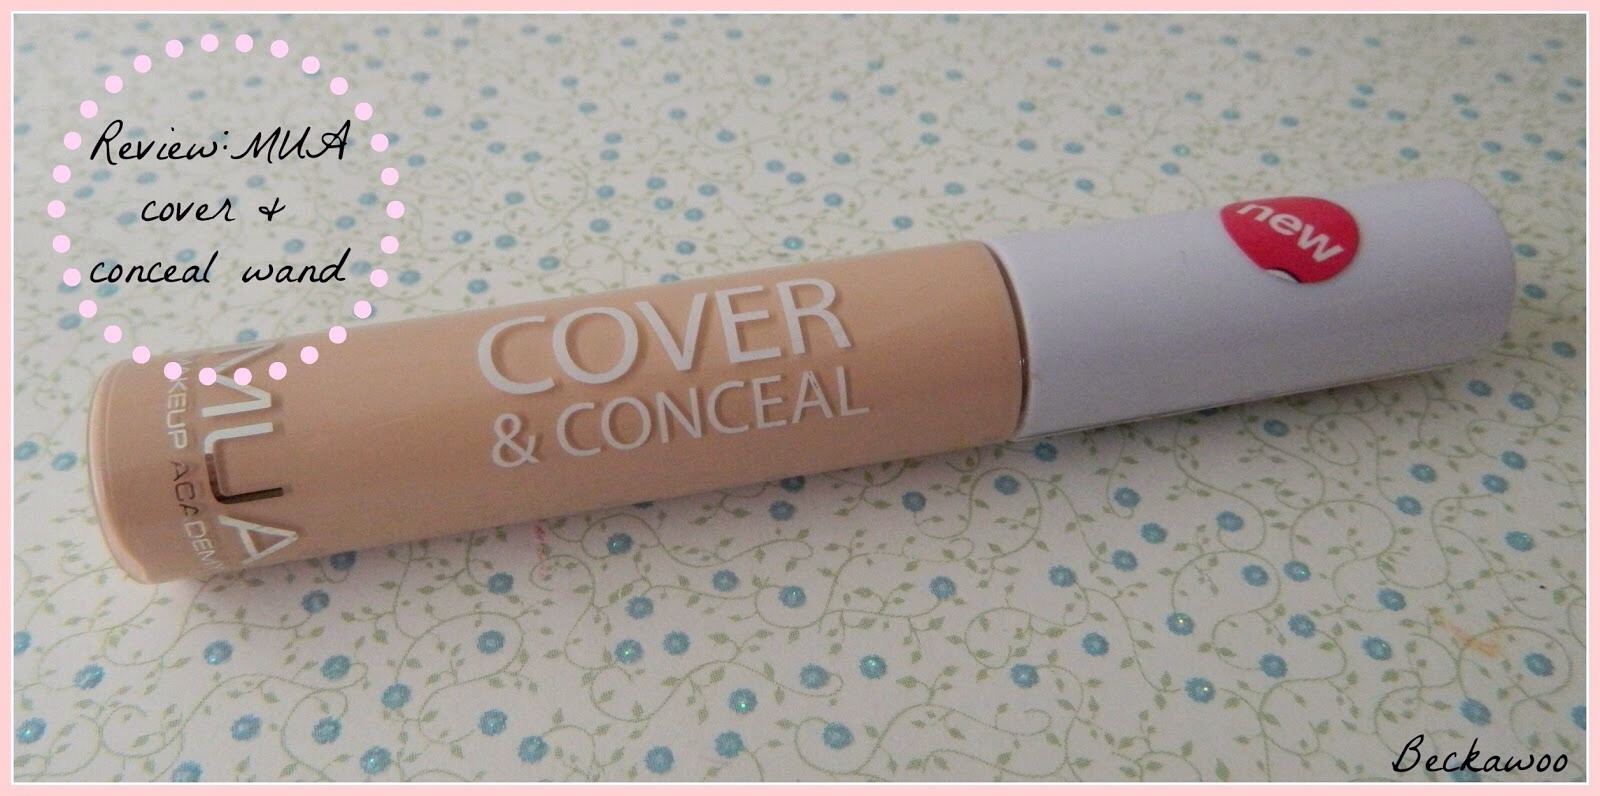 Concealer can act as an eye primer if you've run out or don't have one.